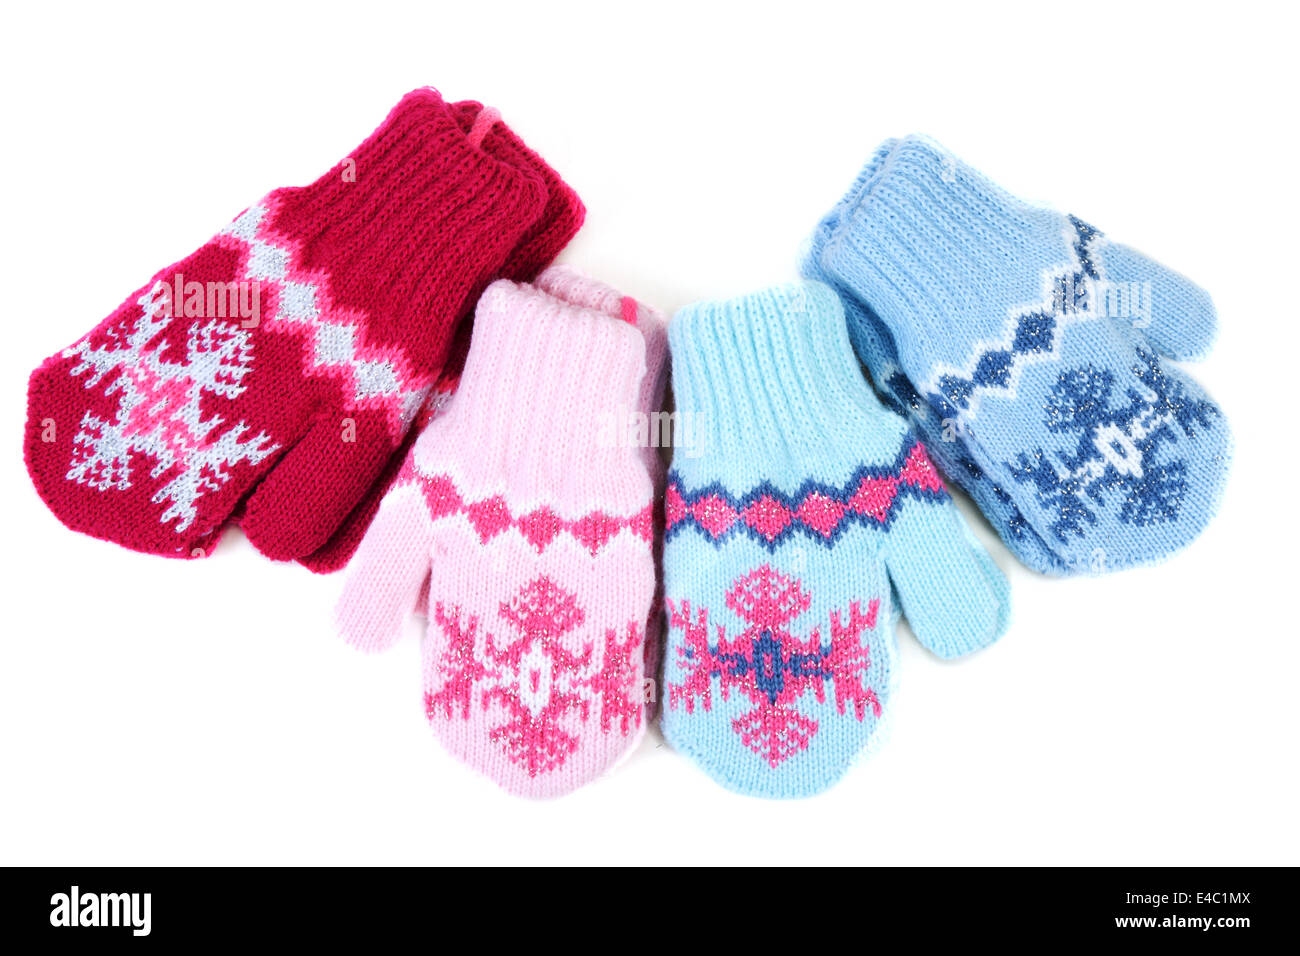 0578fbc69 Knitted Woolen Baby Gloves Stock Photos & Knitted Woolen Baby Gloves ...